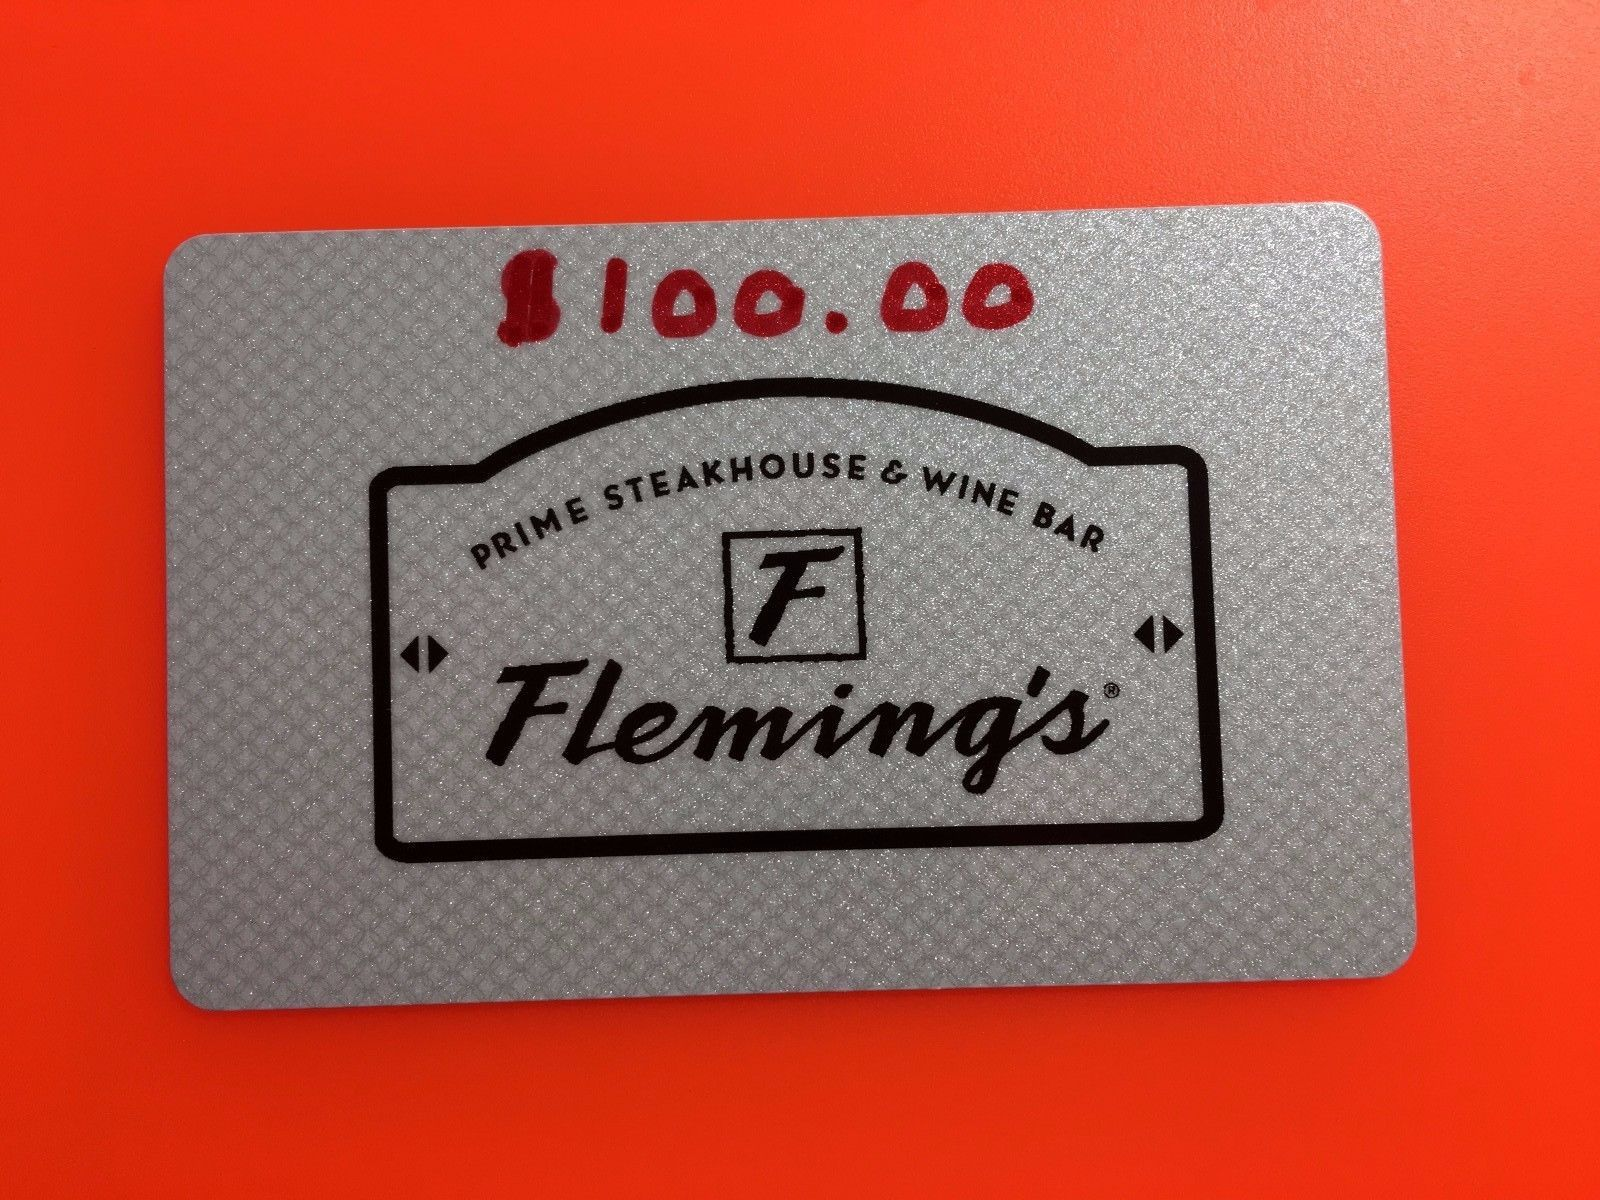 S Giftcards 100 Fleming Steakhouse Outback Bonefish Or Carrabba Gift Card